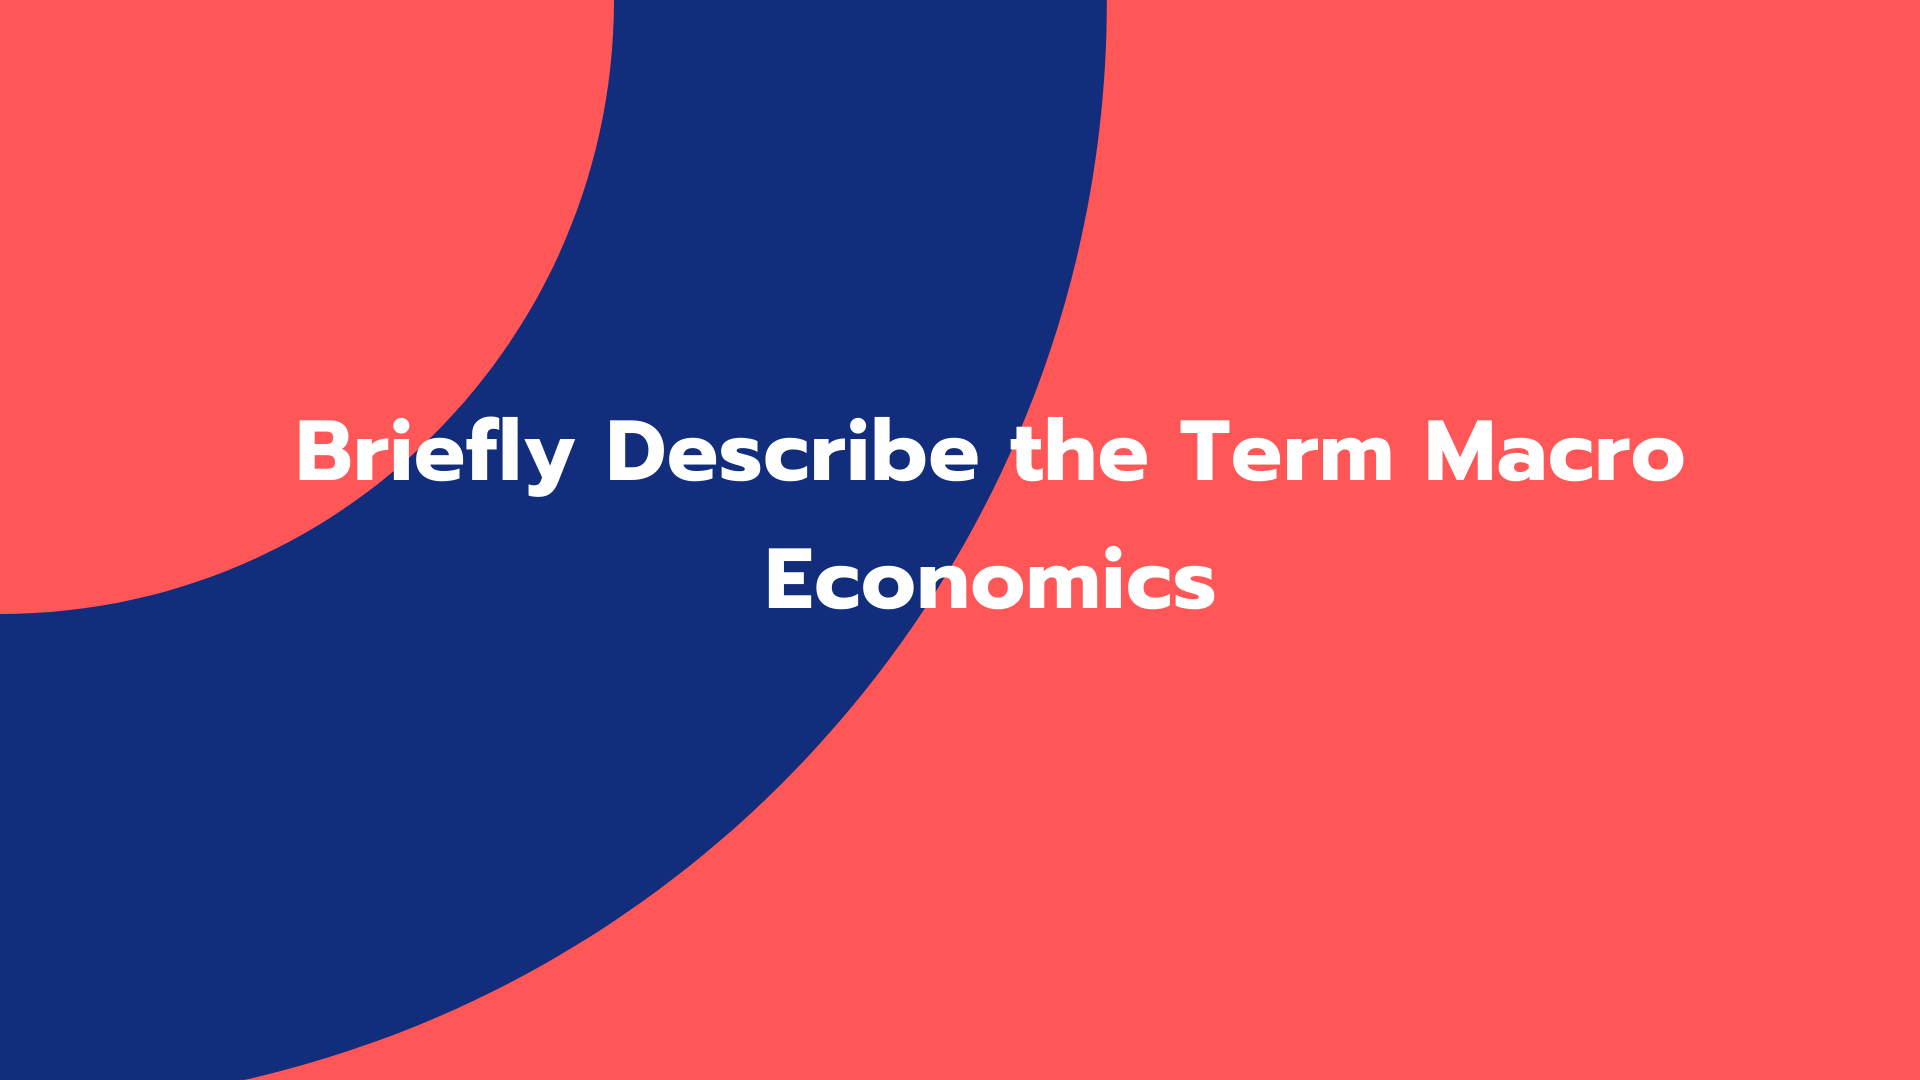 Briefly Describe the Term Macro Economics